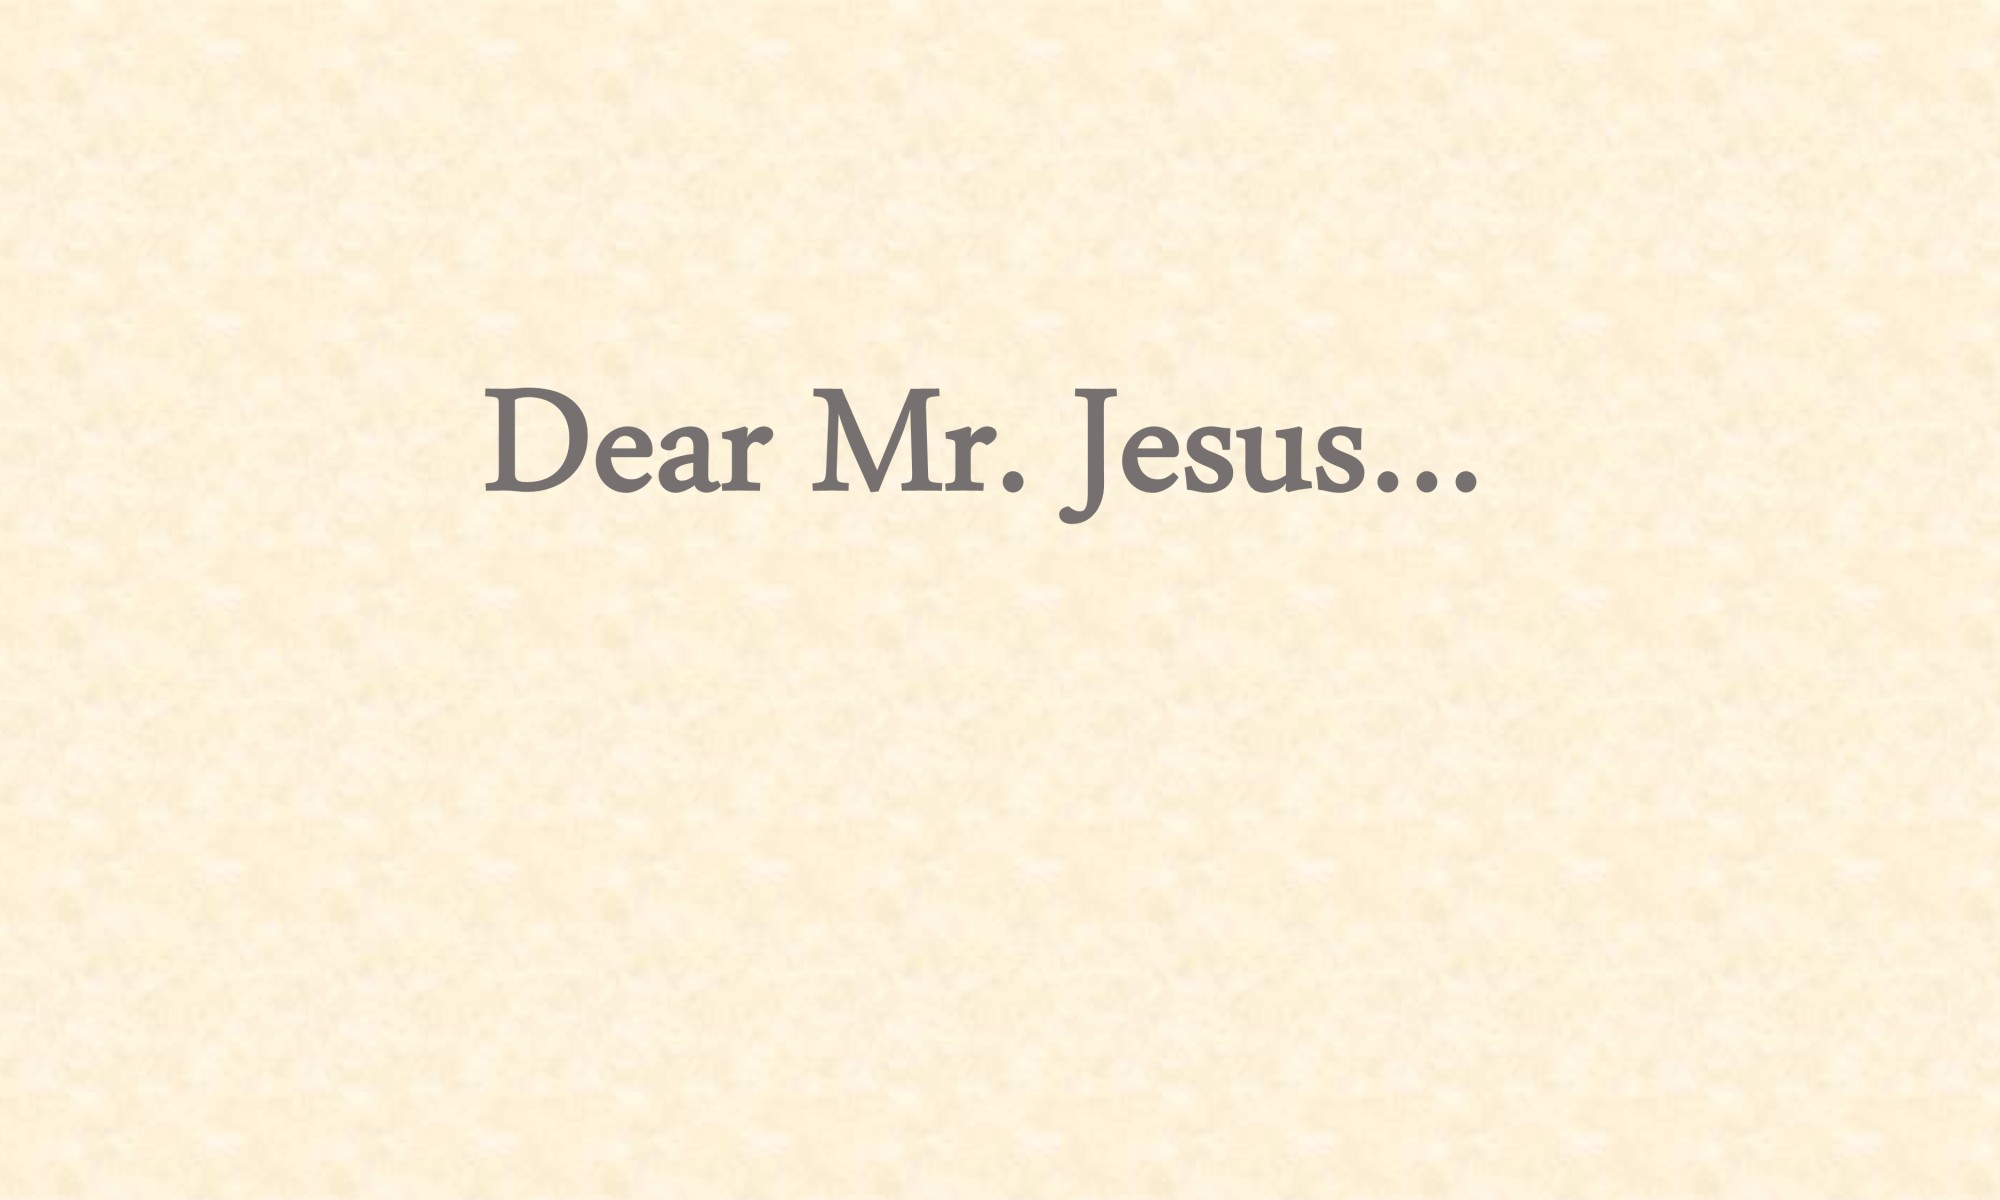 stylized title image saying Dear Mr. Jesus